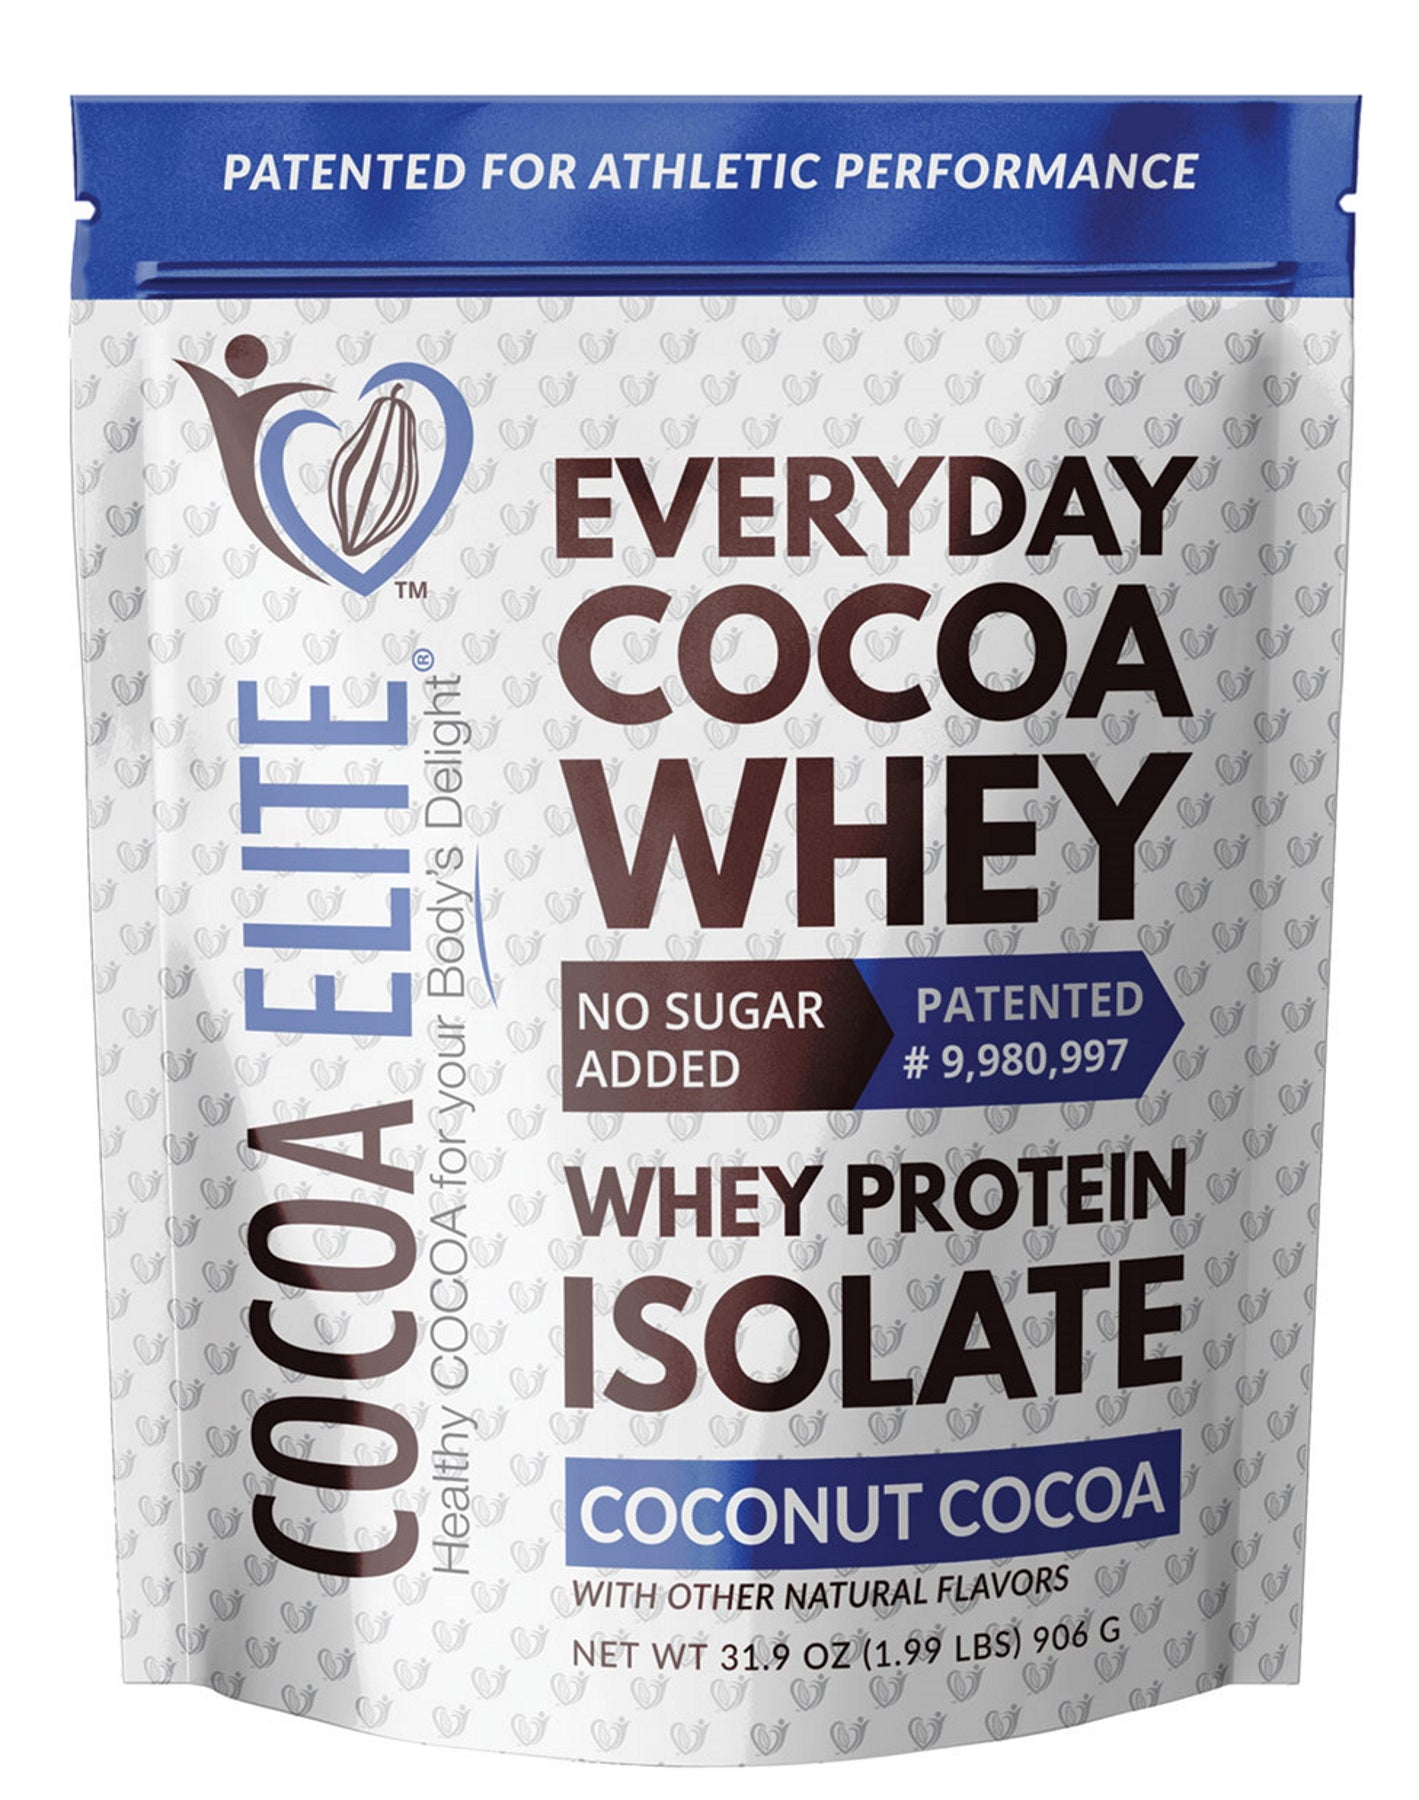 Everyday Cocoa Whey - Coconut Cocoa